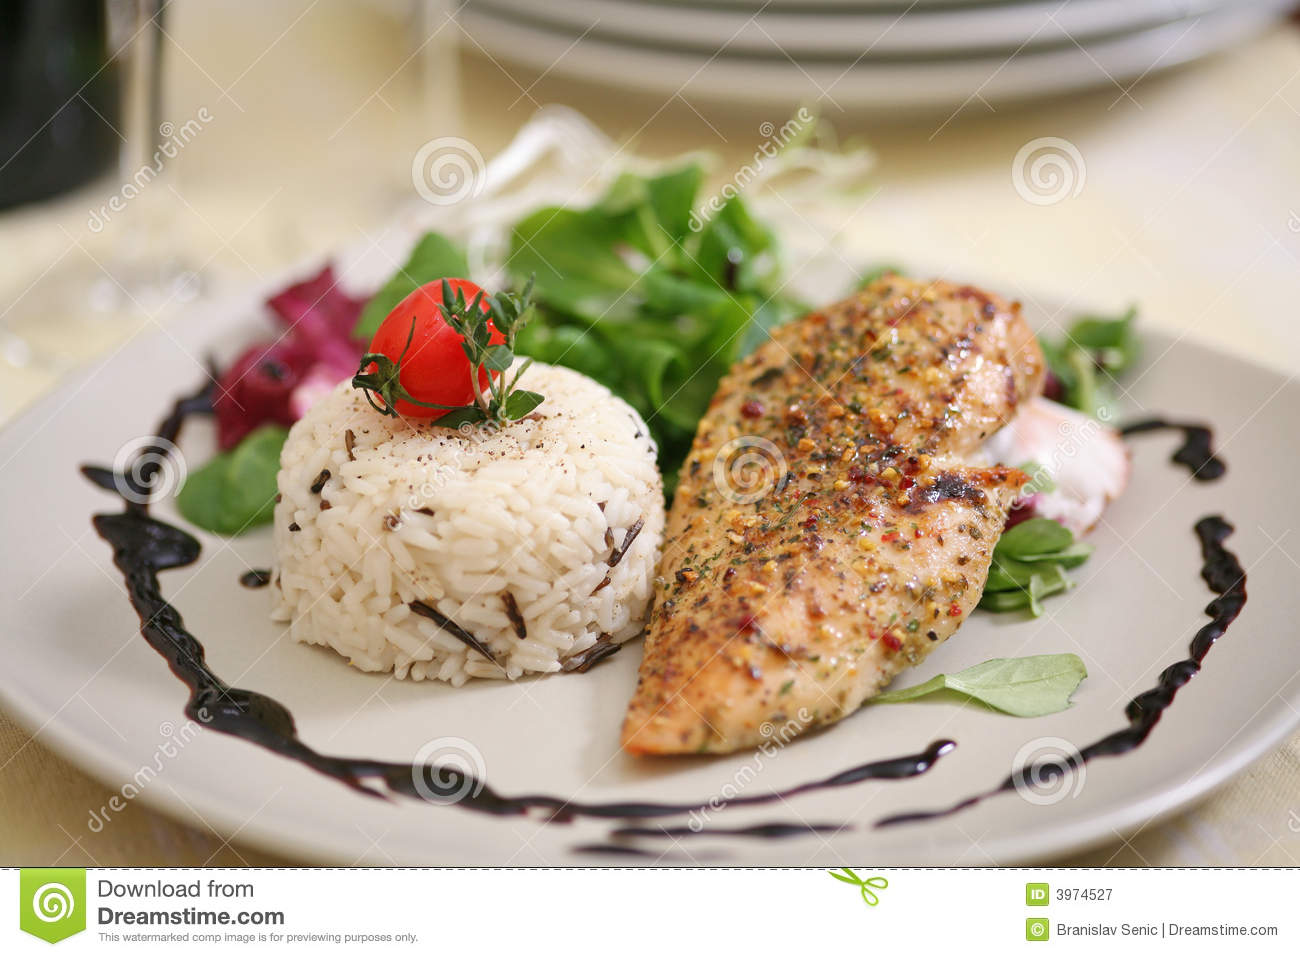 Broiled chicken breast with wild rice